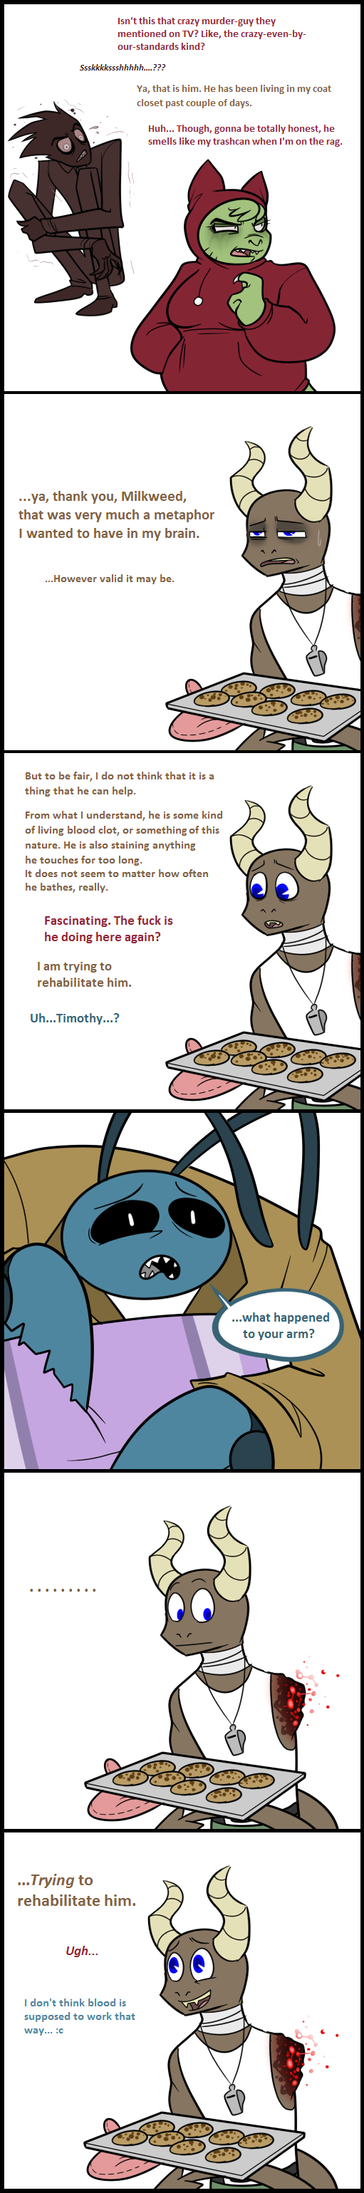 TGf MiniComic - Cookies by blinkpen